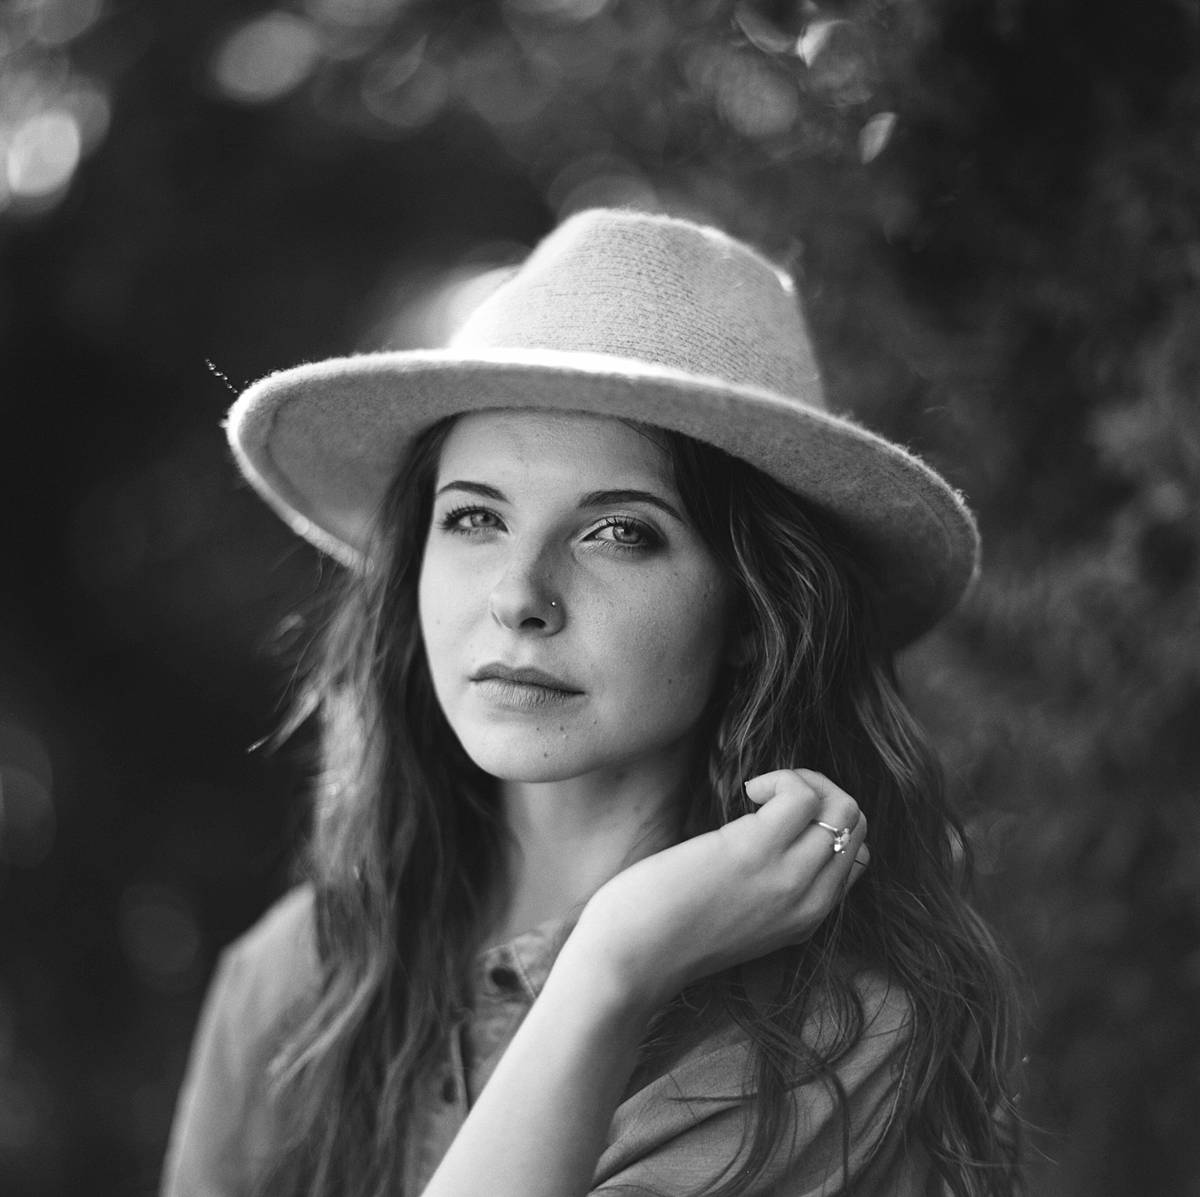 kodak tmax 400 medium format film portrait chelsea green in charleston south carolina wearing hat and blouse in black and white